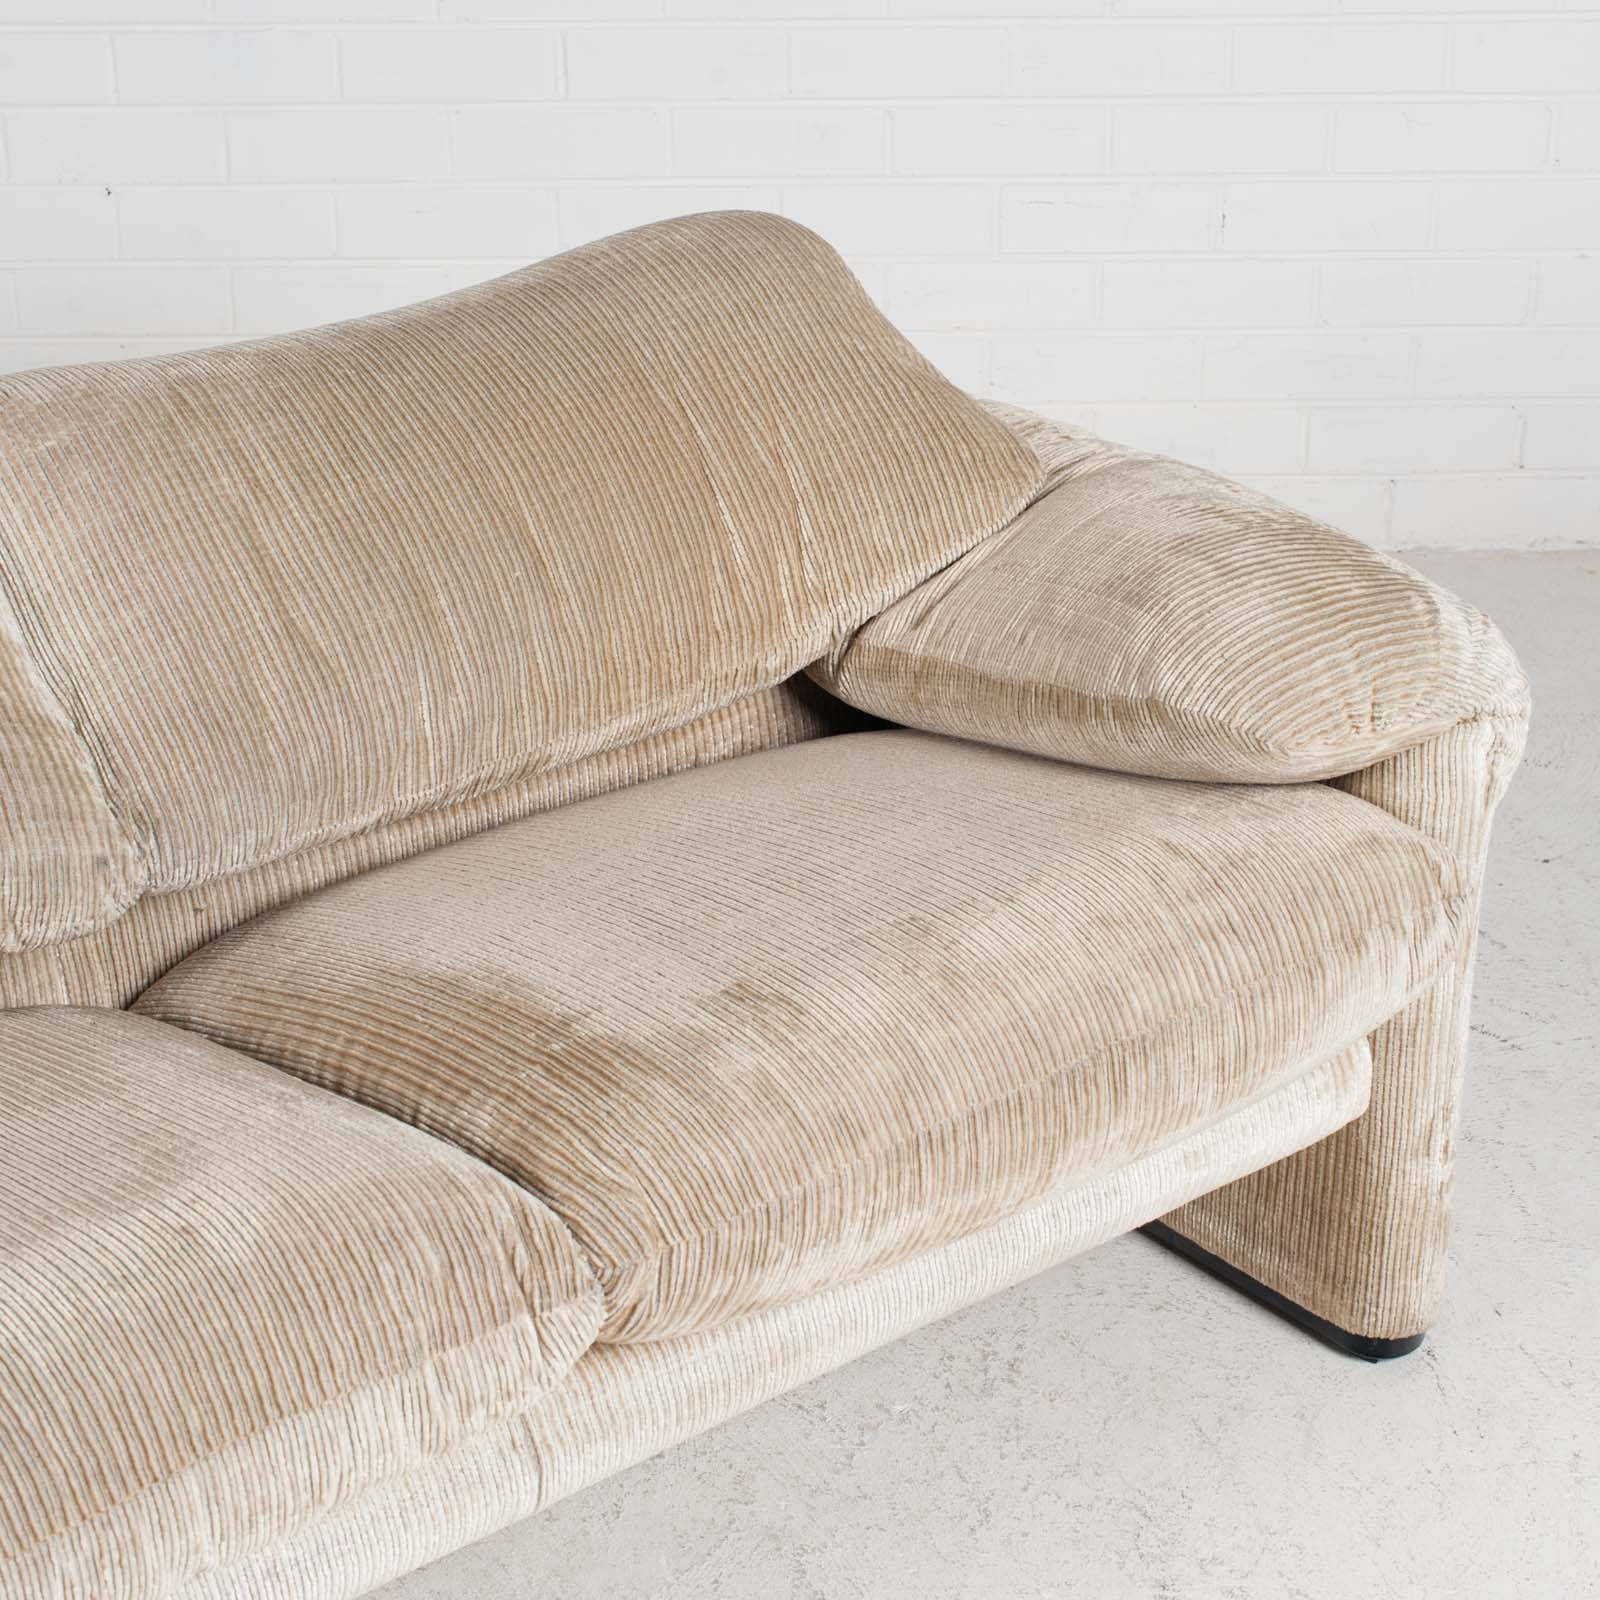 Maralunga 2 Seat Sofa By Vico Magistretti For Cassina In Original Upholstery 1970s Italy 05